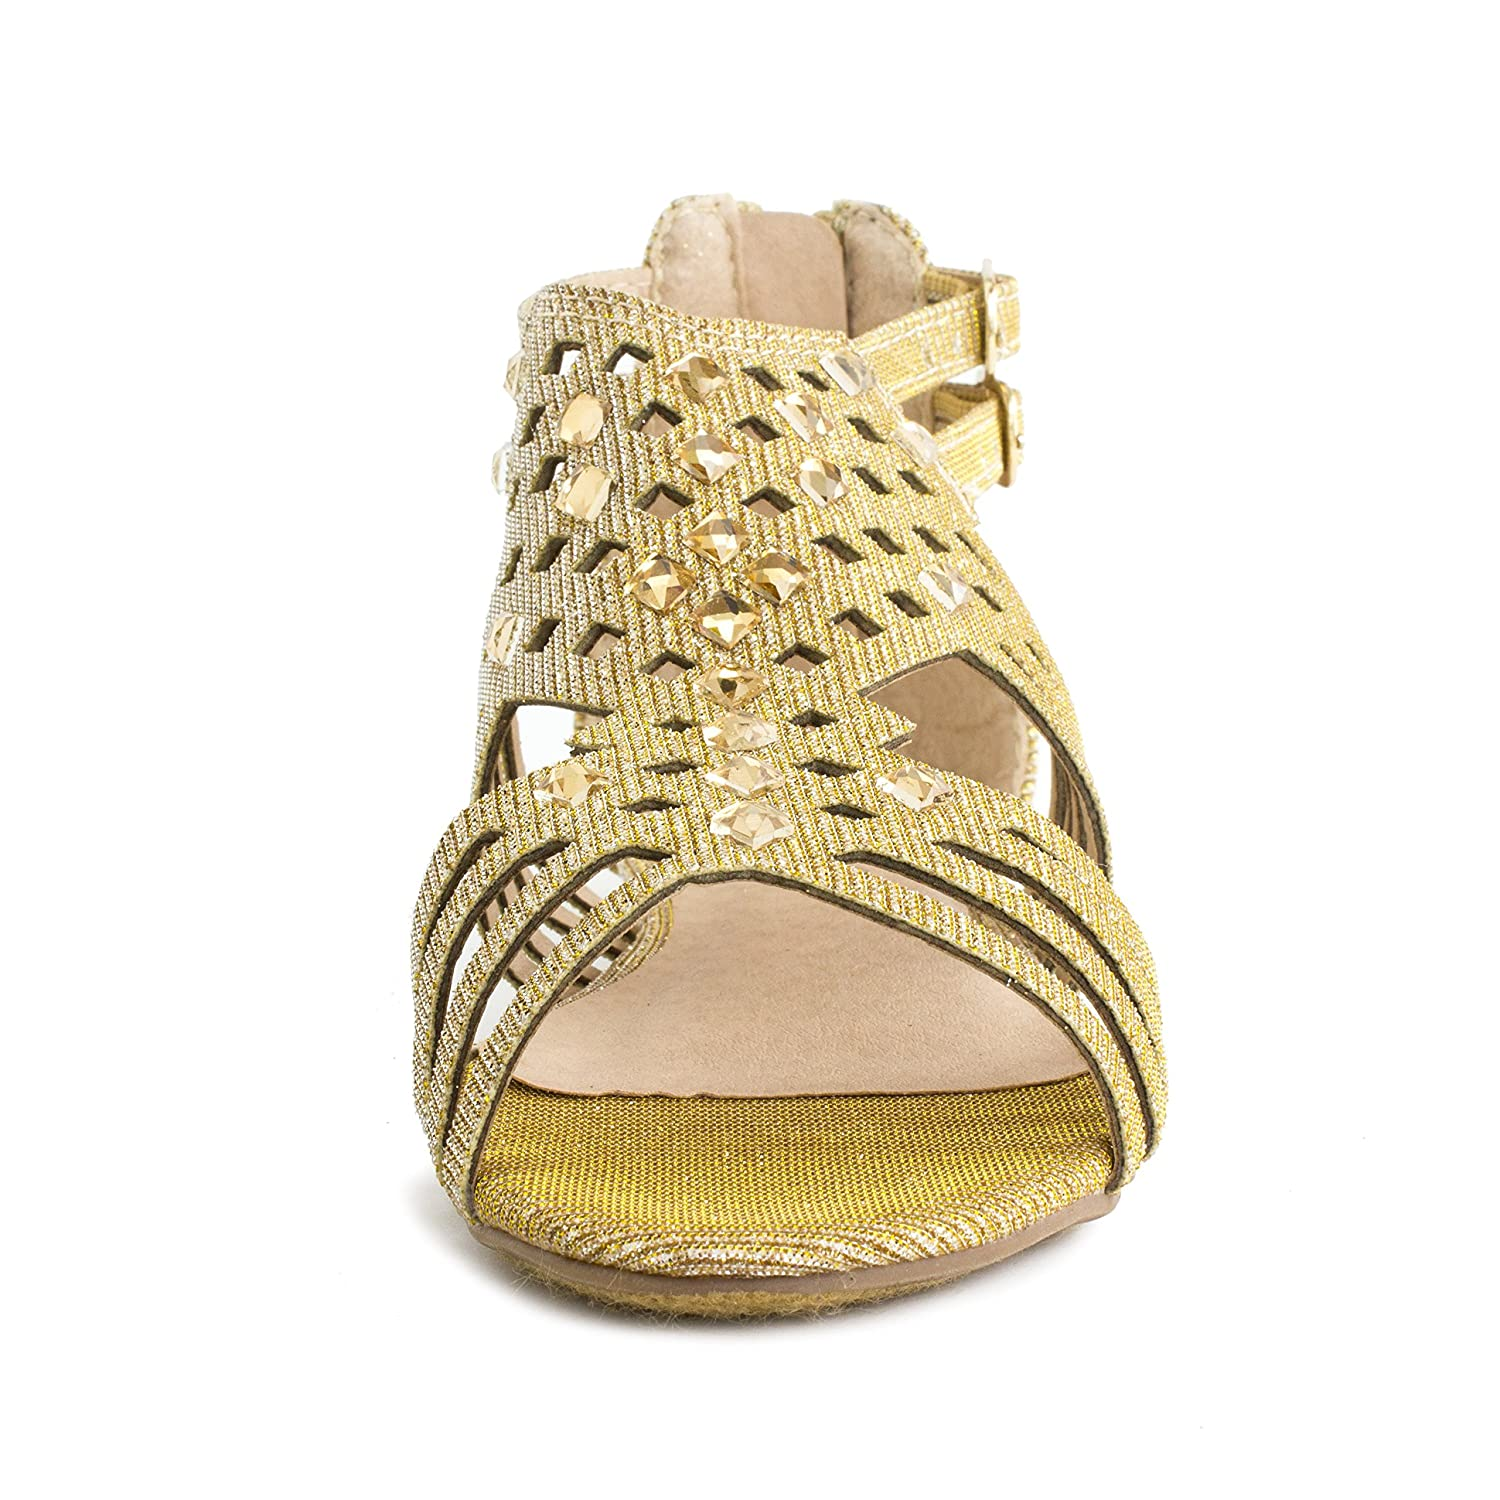 Bellar53K Link Girls Stud Zipper Gladiator Flat Sandals Toddler//Little Kid//Big Kid